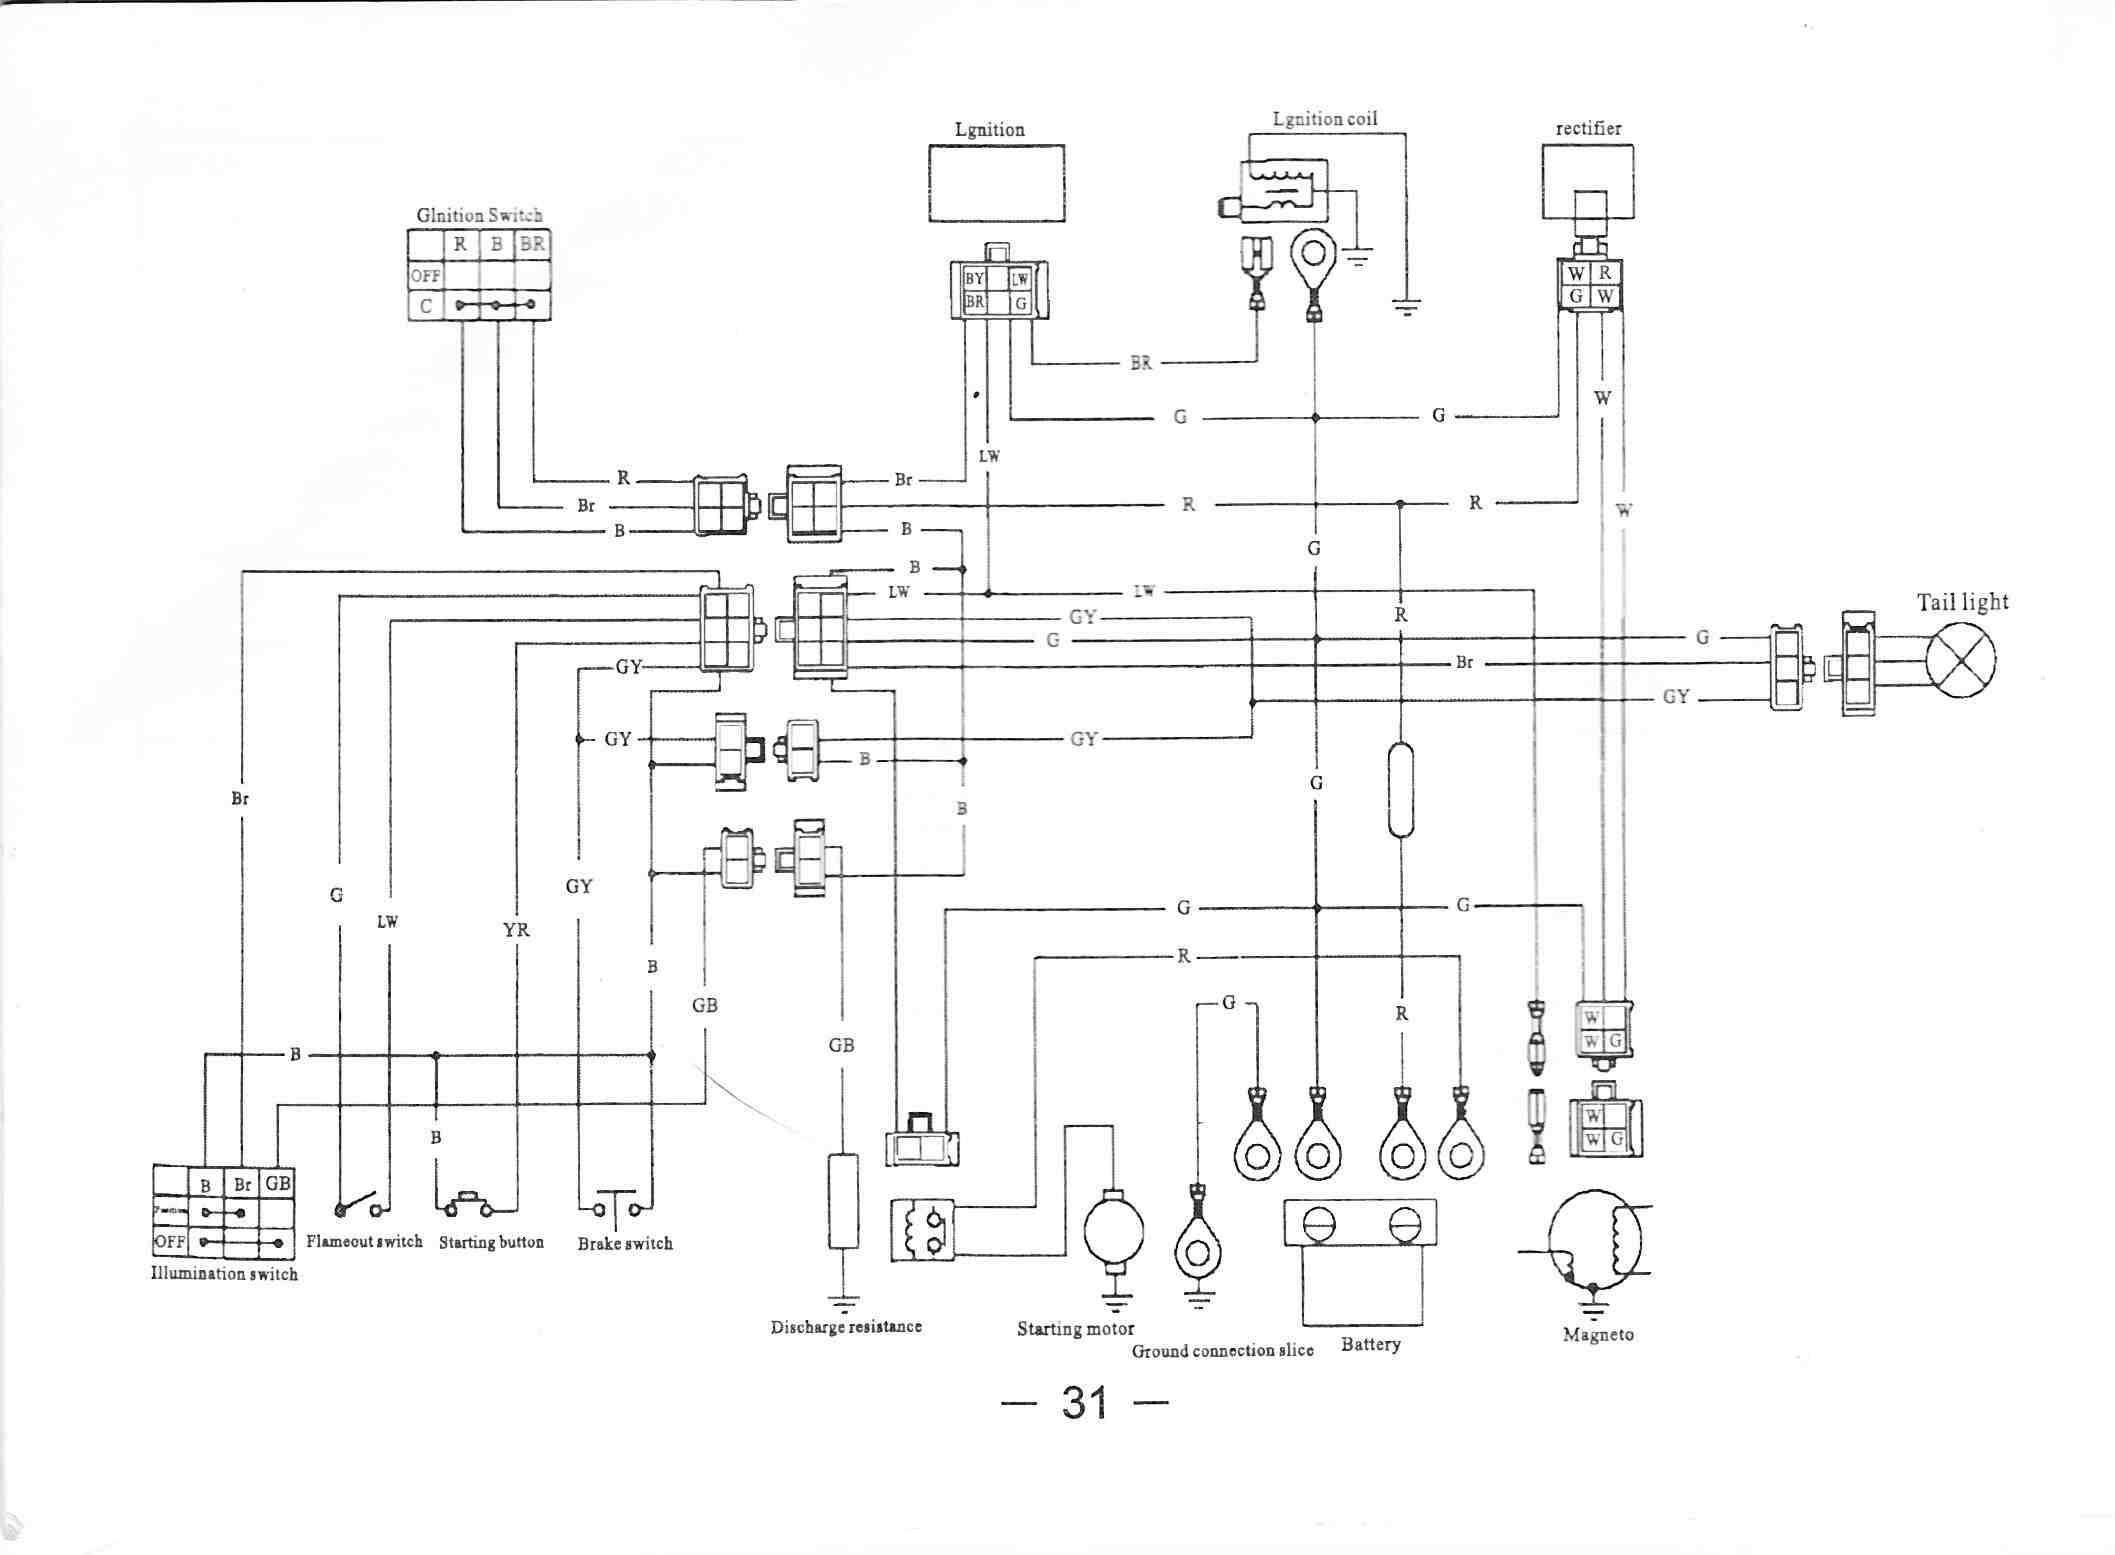 taotao 150cc scooter wiring diagram lan plug yamoto 70cc posted below - atvconnection.com atv enthusiast community